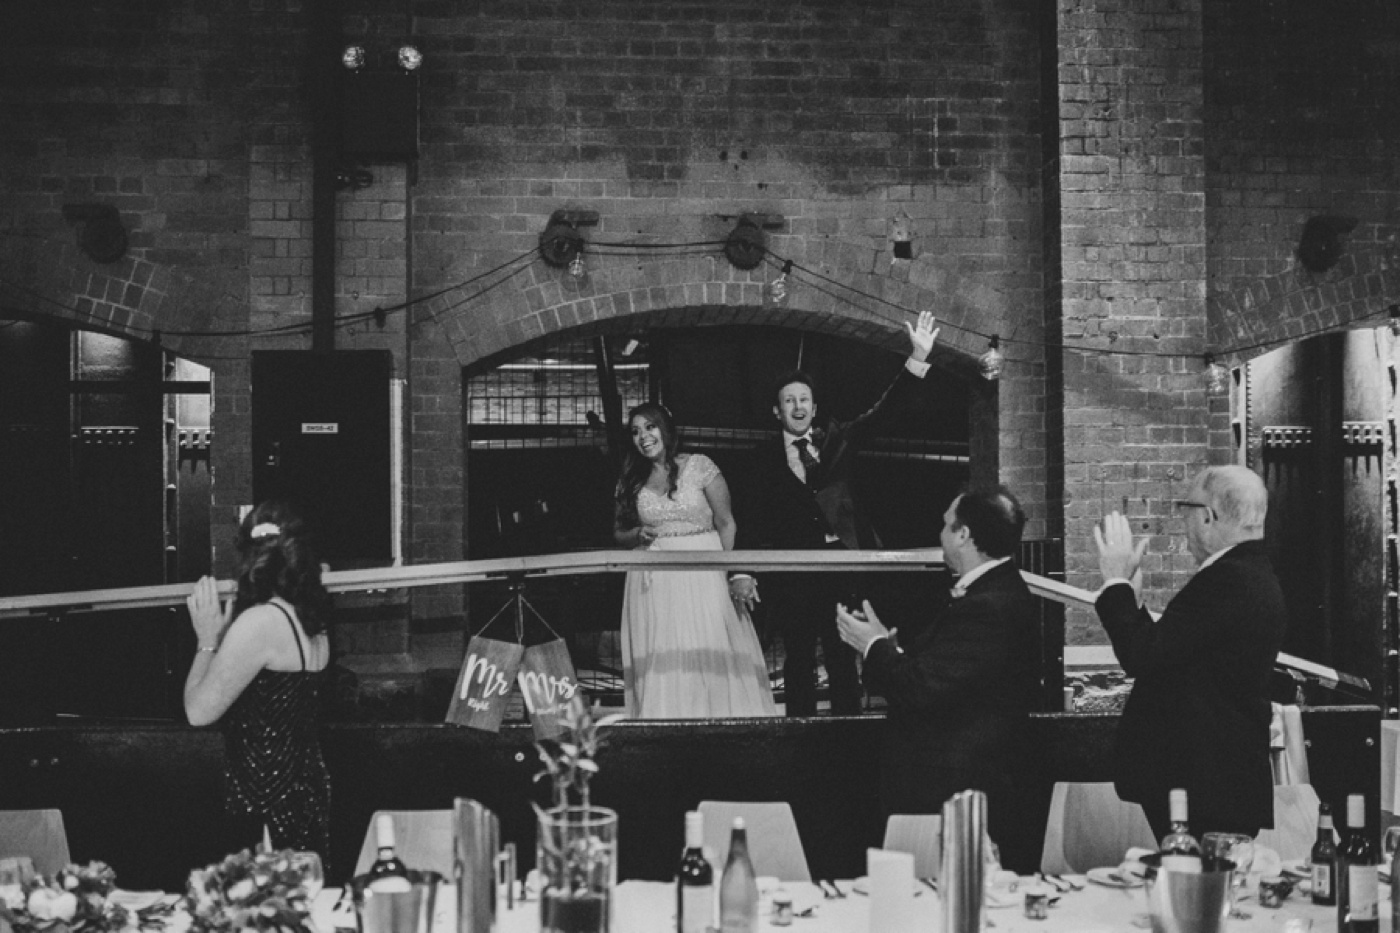 anitadaniel_melbourne-scienceworks-relaxed-fun-geek-wedding_melbourne-candid-wedding-photography_76